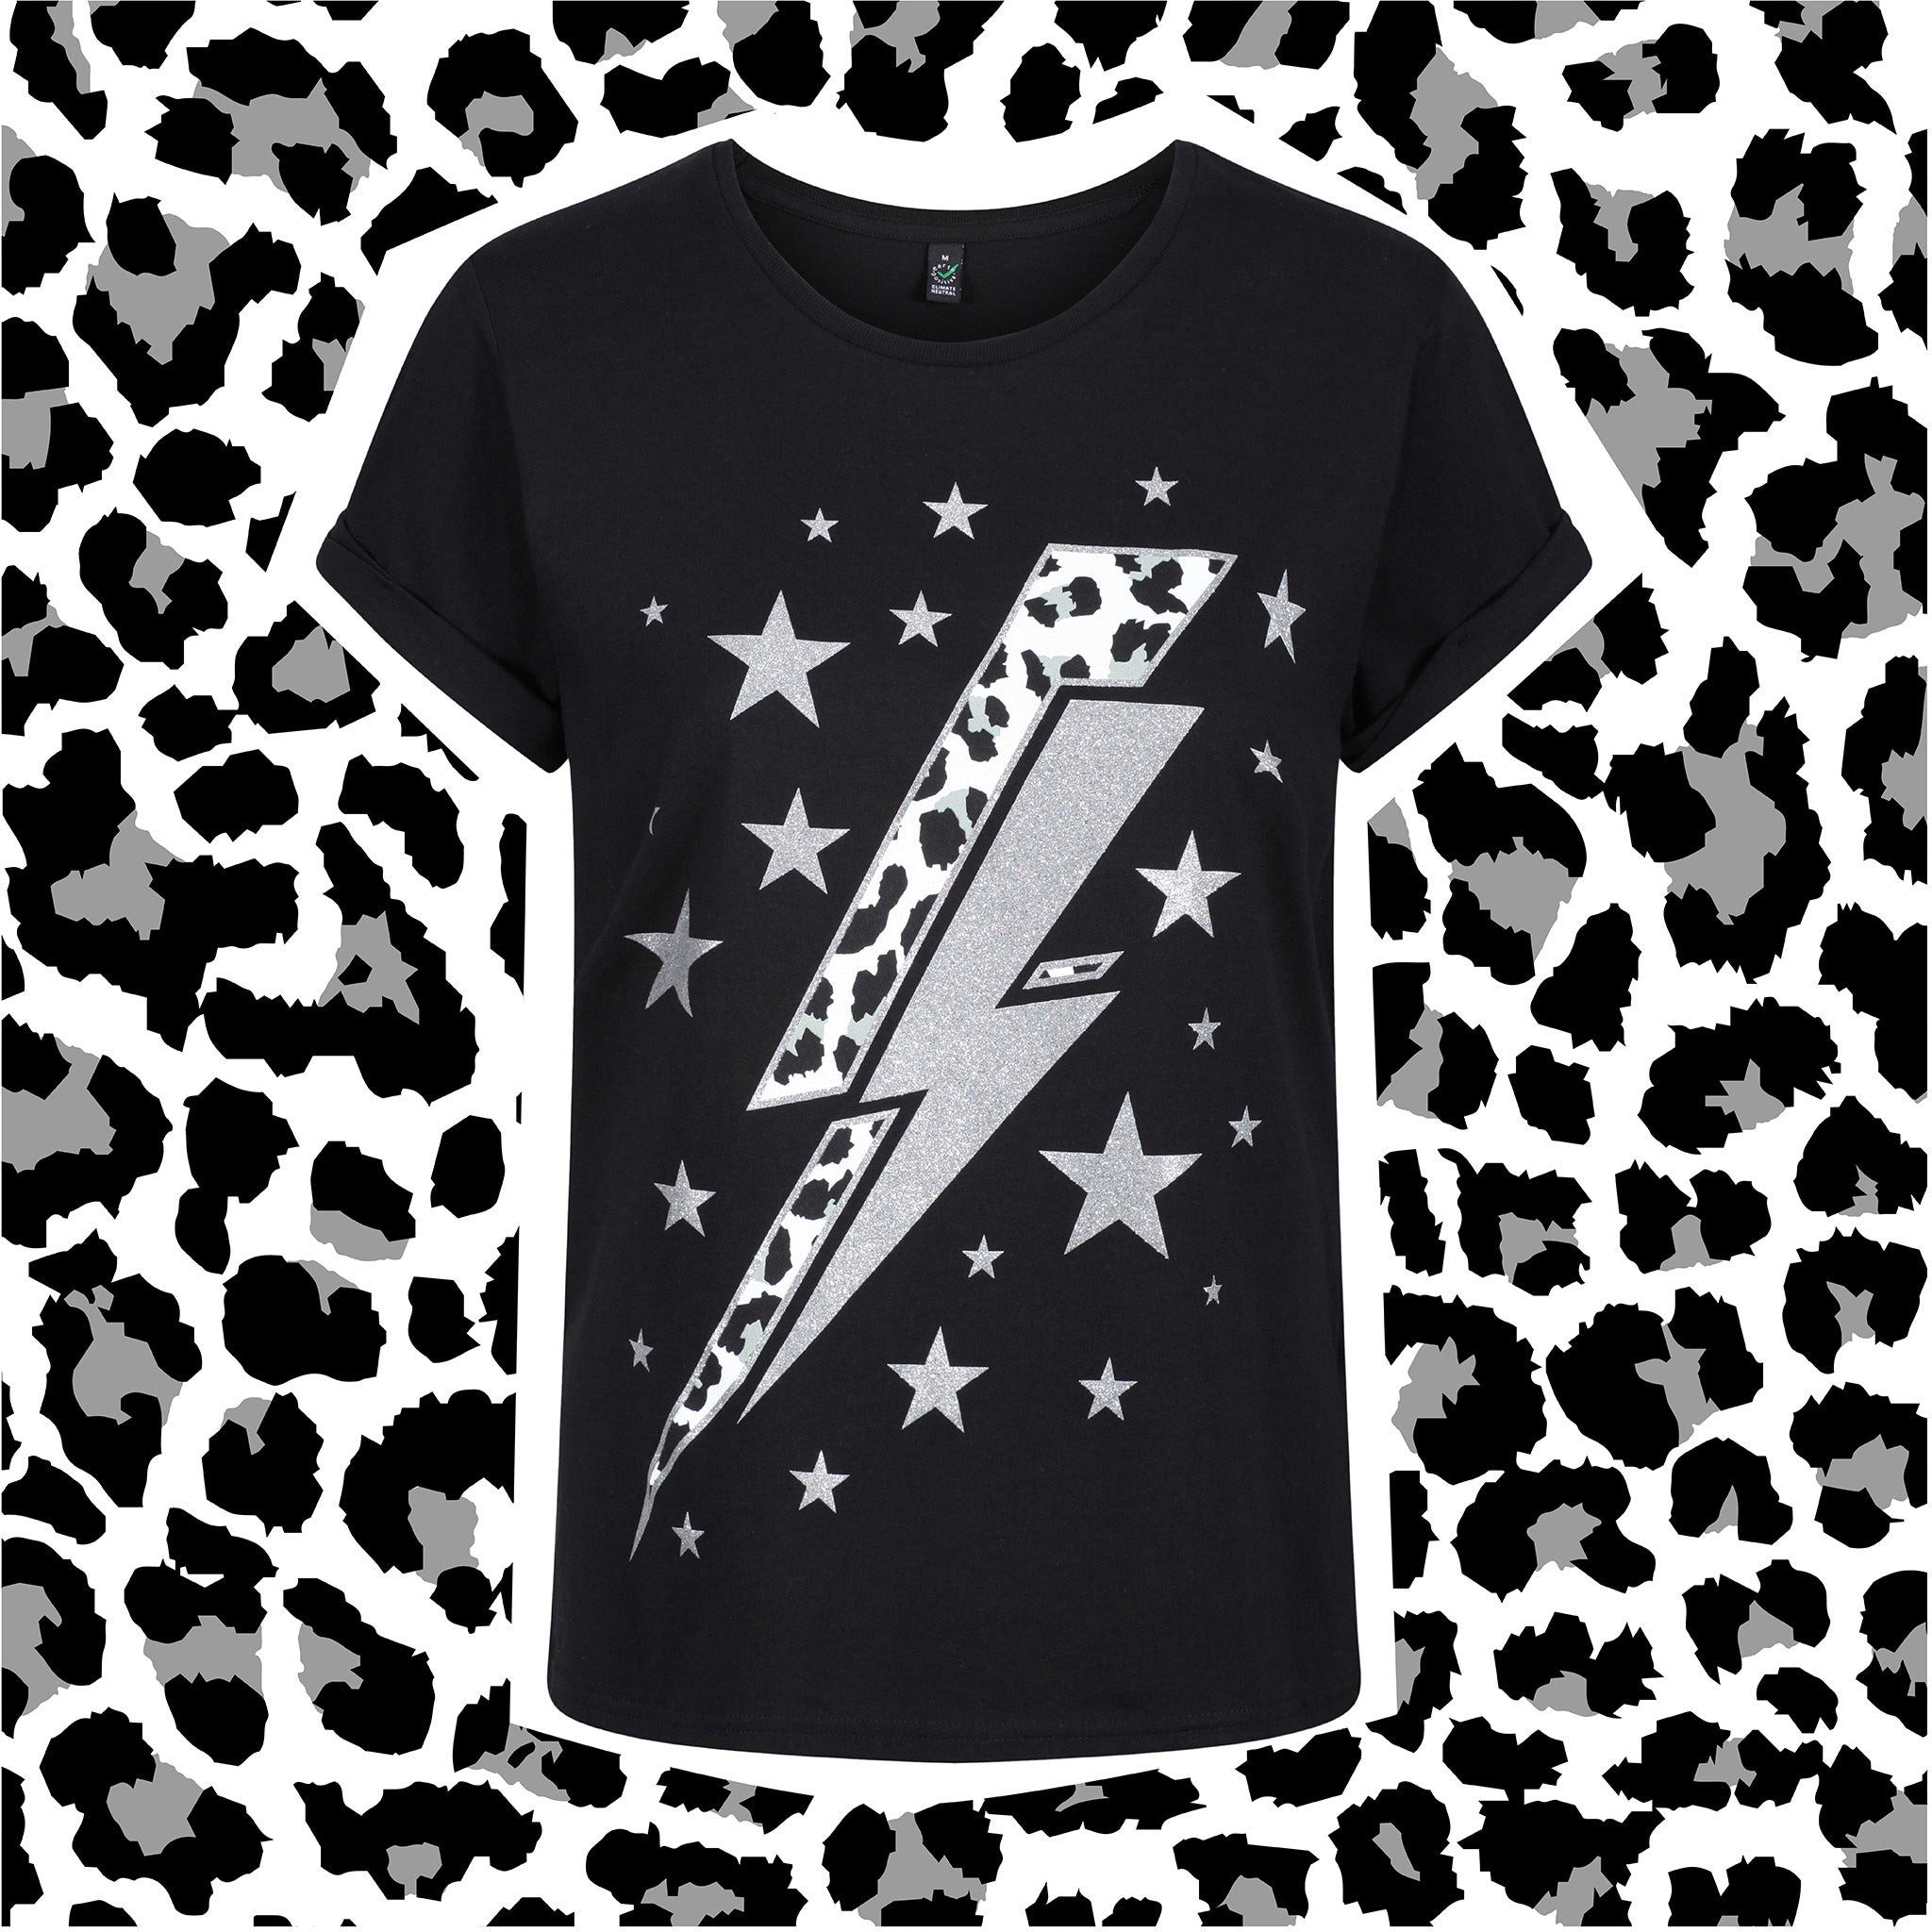 The GLITTER LEOPARD LIGHTNING BOLT Top